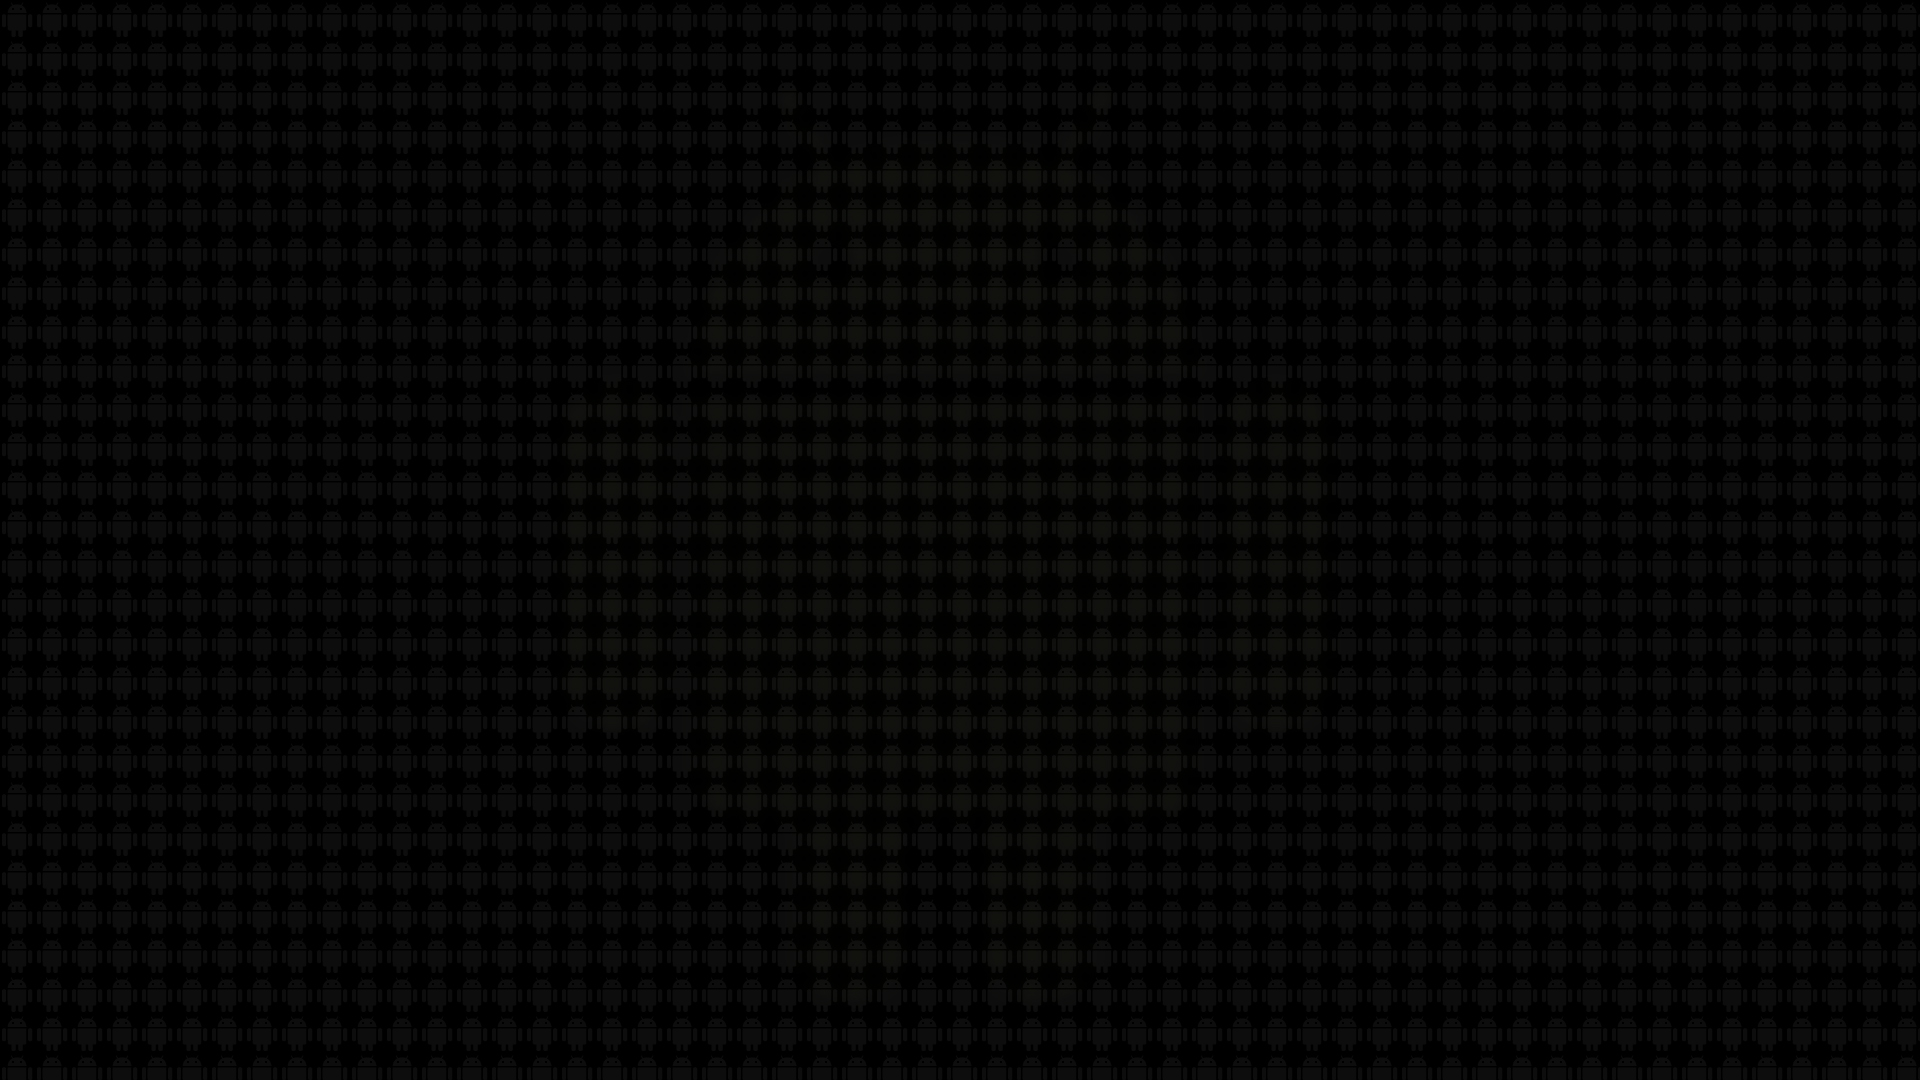 Black Grid Wallpaper 15131